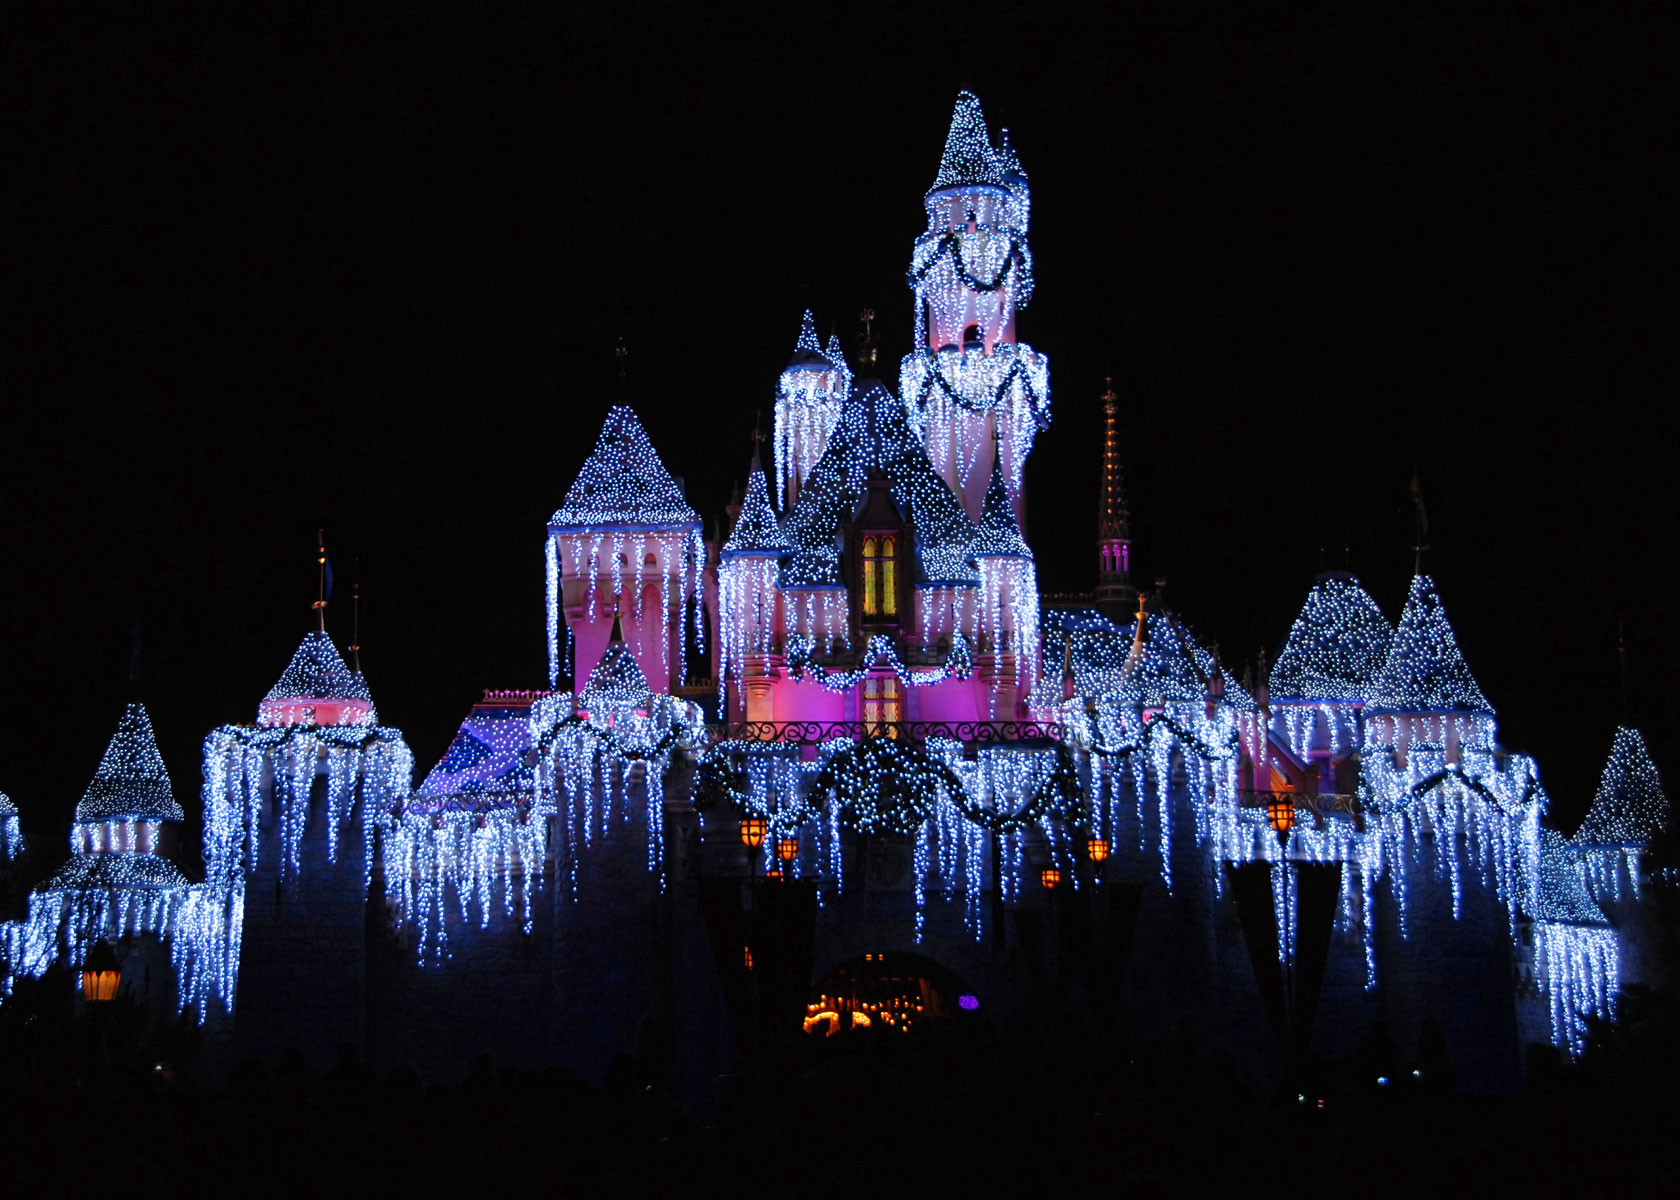 Mouseplanet Christmastime 2007 At Disneyland Resort By